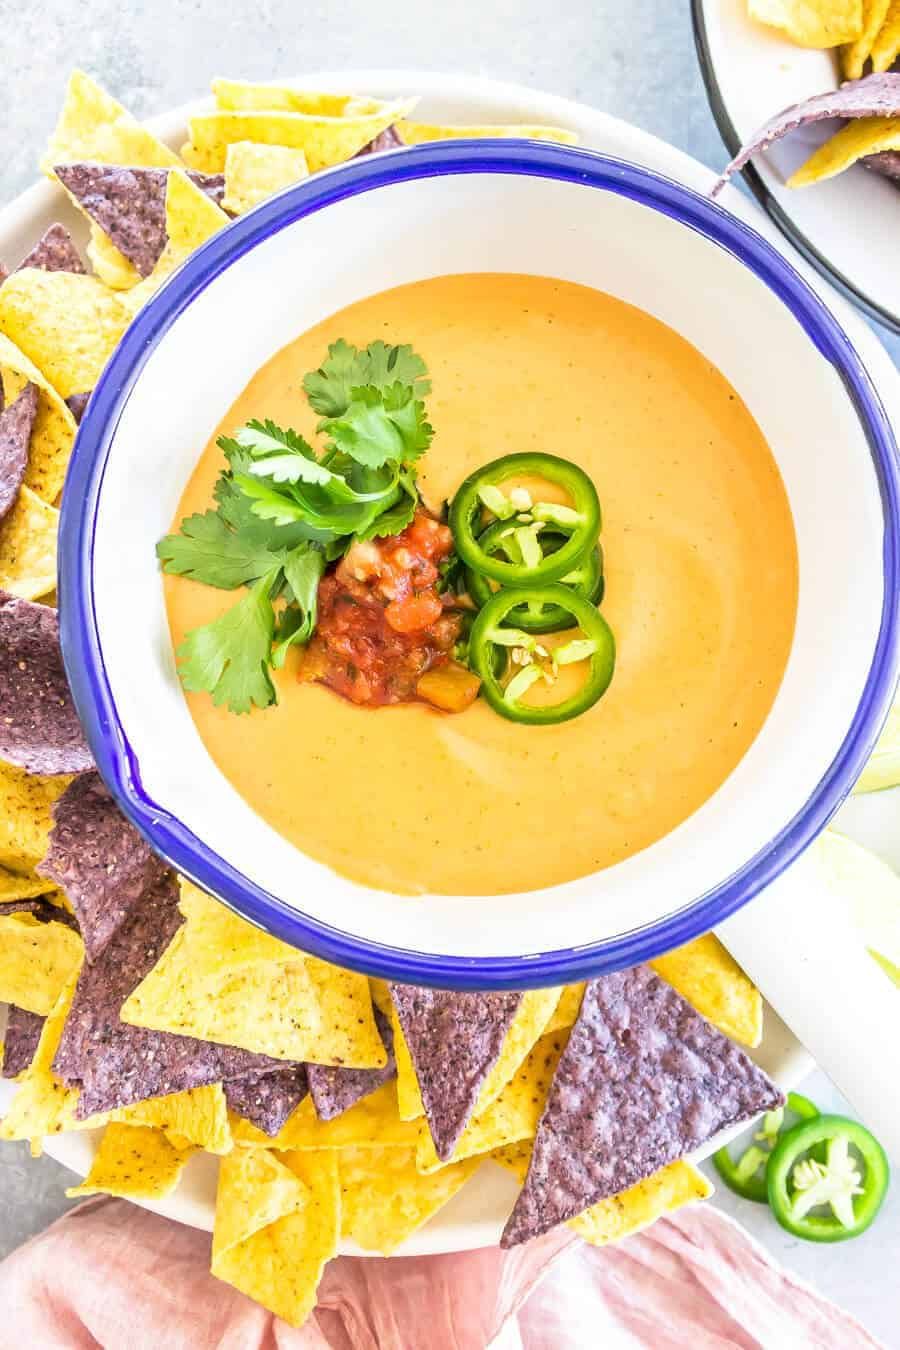 The Best Vegan Queso Recipe - Bowl with queso dip